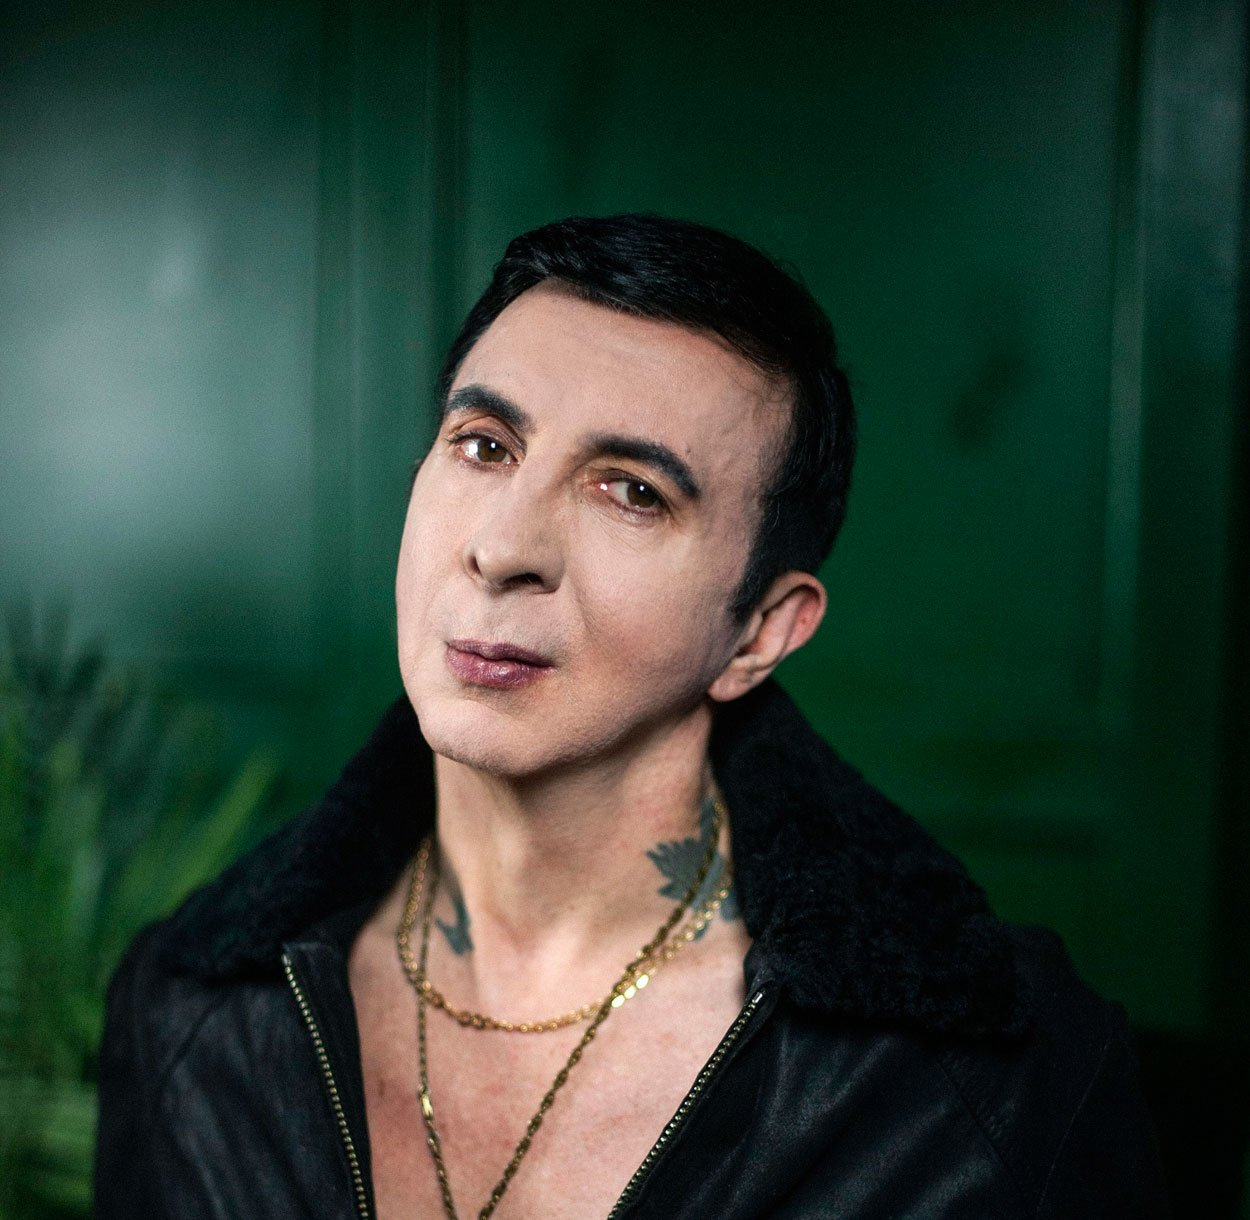 MARC ALMOND announces new album 'CHAOS AND A DANCING STAR' out 31st January